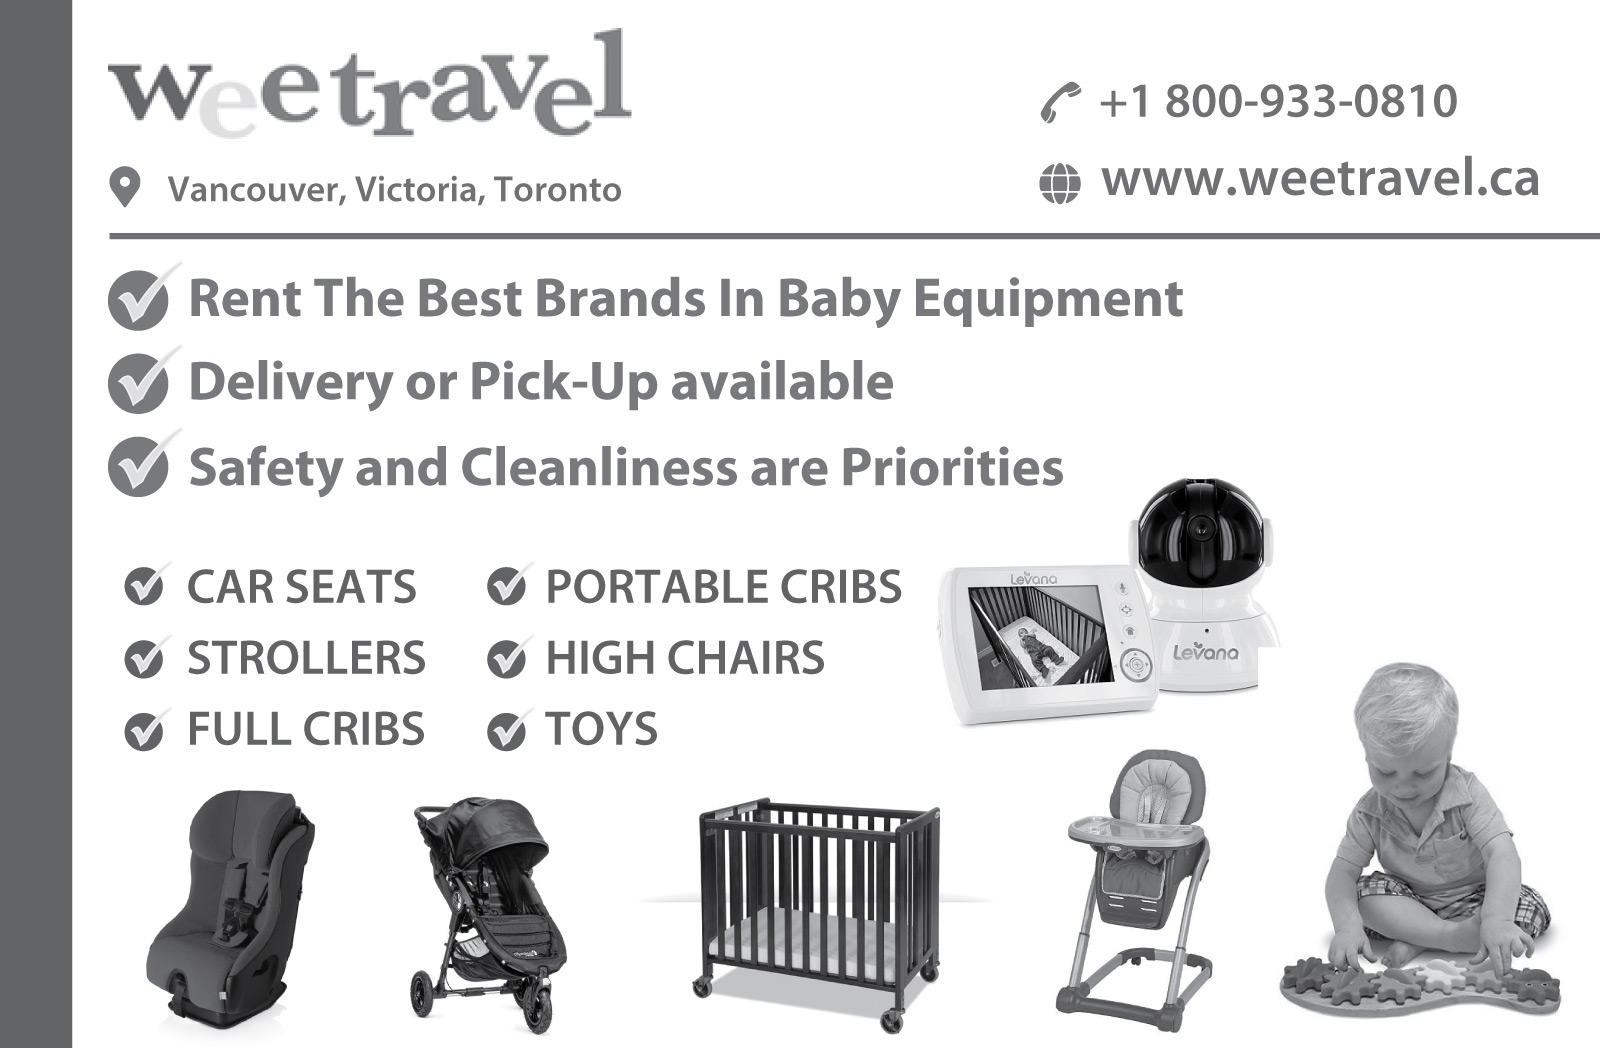 Wee Travel Baby Equipment Rentals